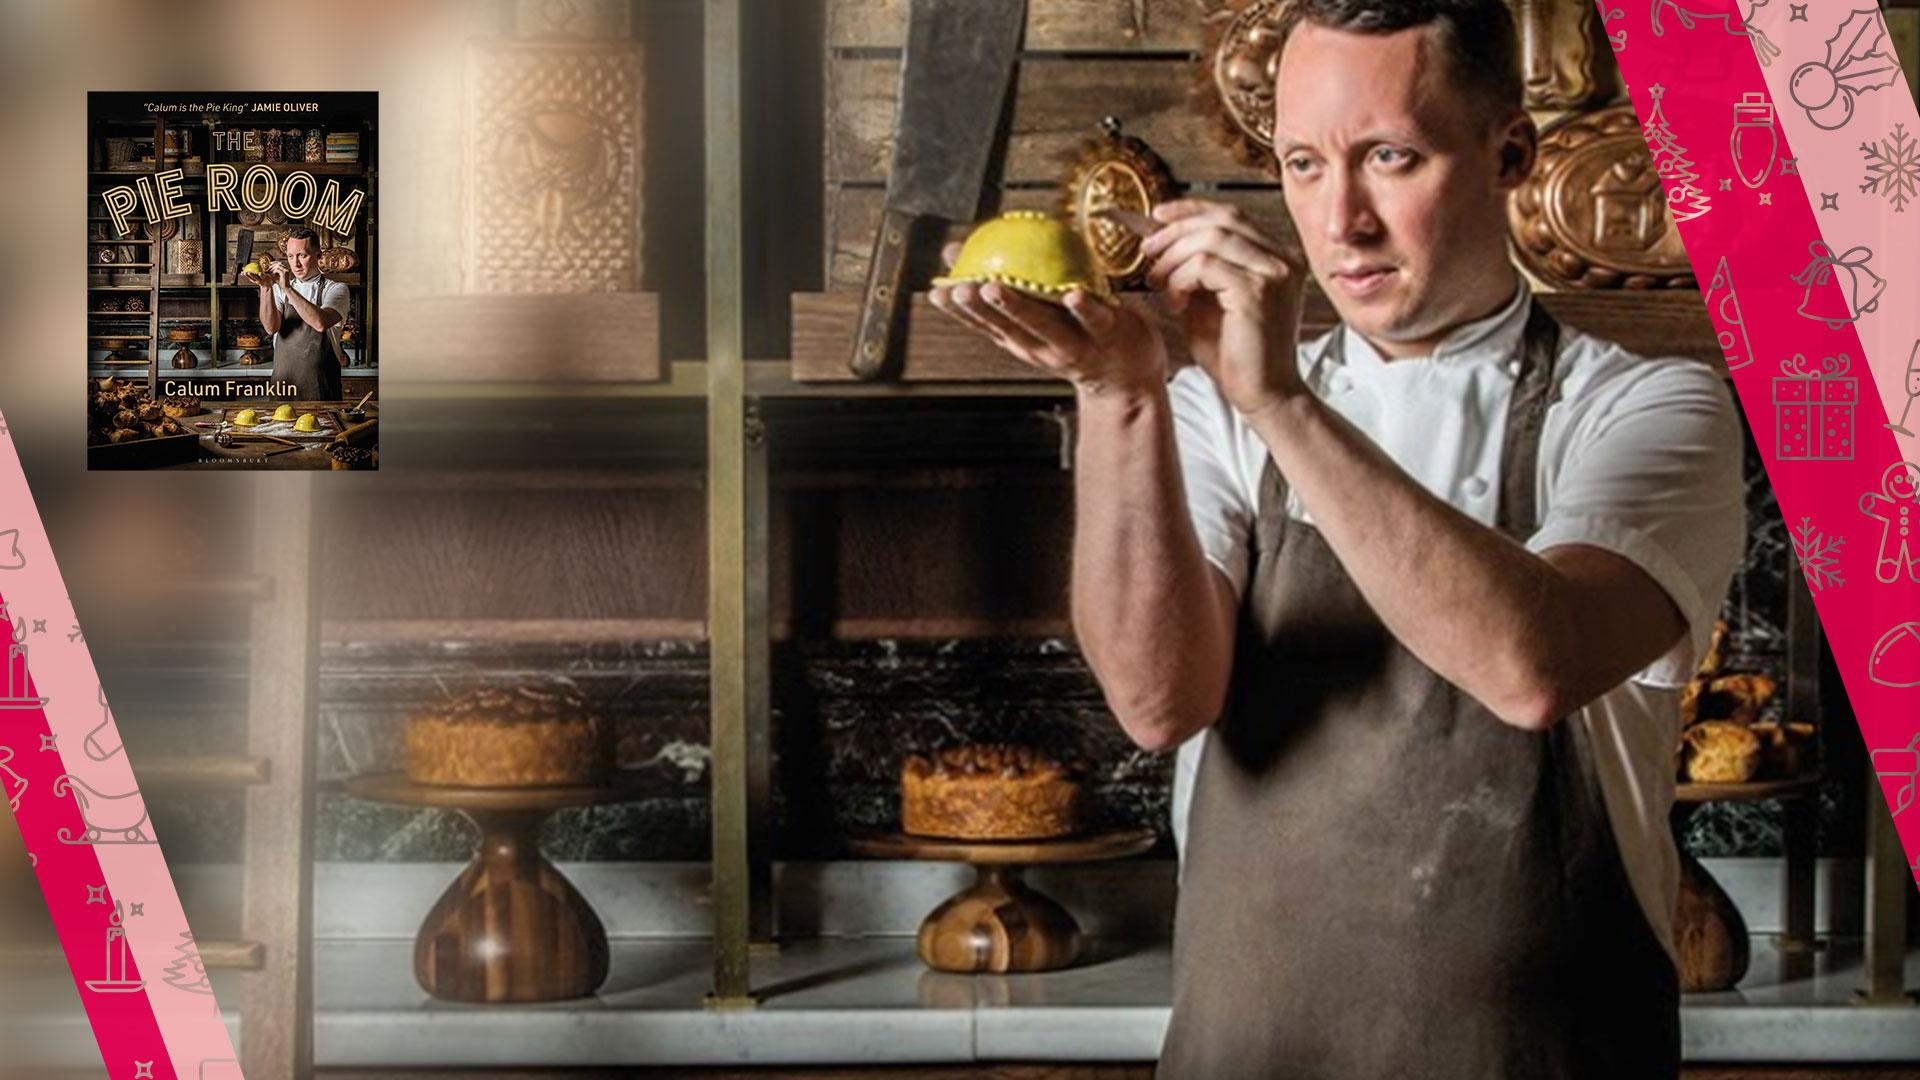 Food and drink Christmas gifts: The Pie Room by Calum Franklin